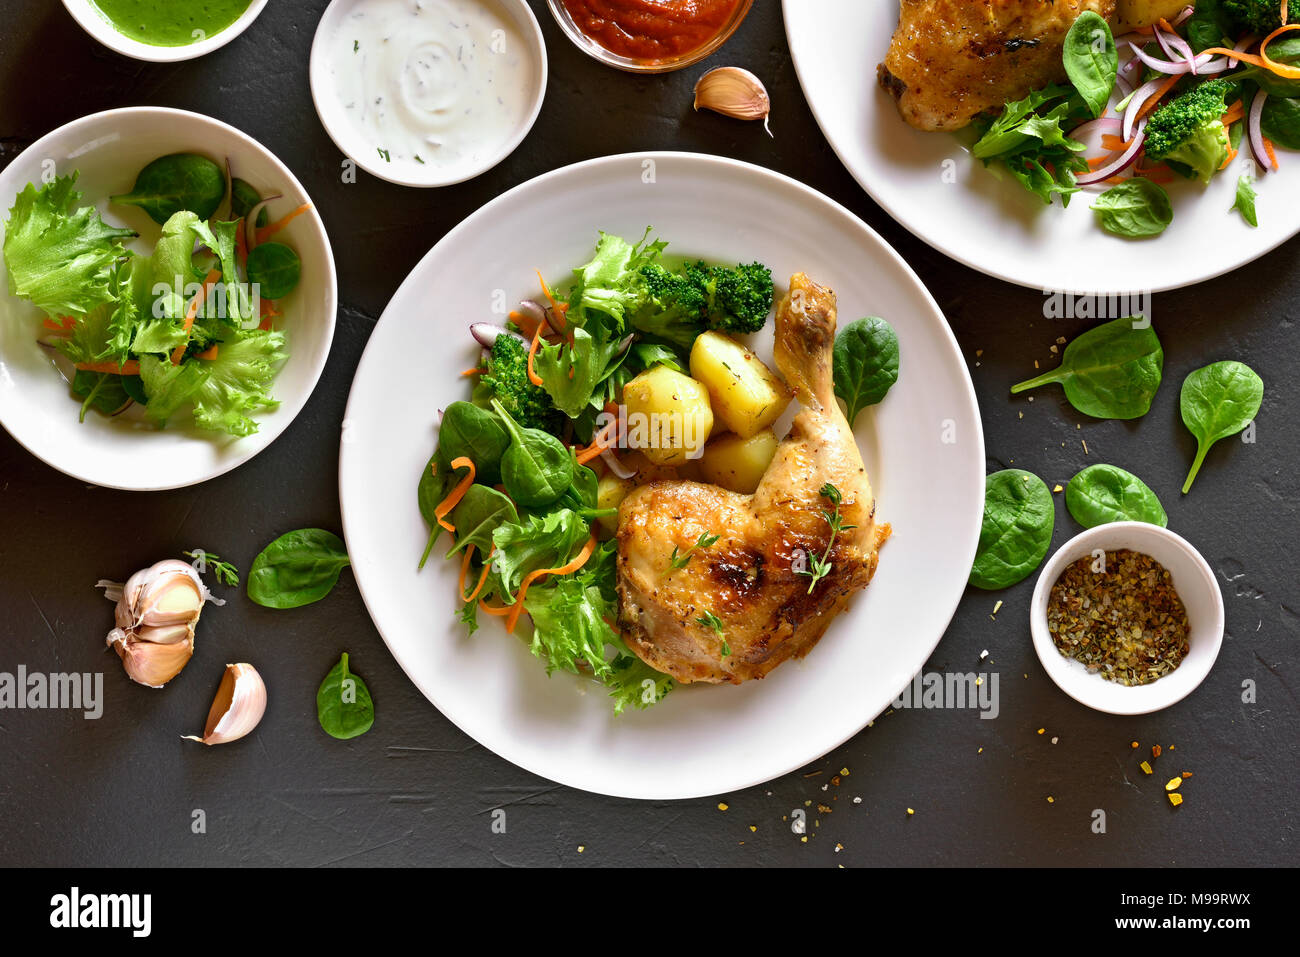 Tasty baked chicken leg with potato and green salad. Dish for dinner. Top view, flat lay - Stock Image